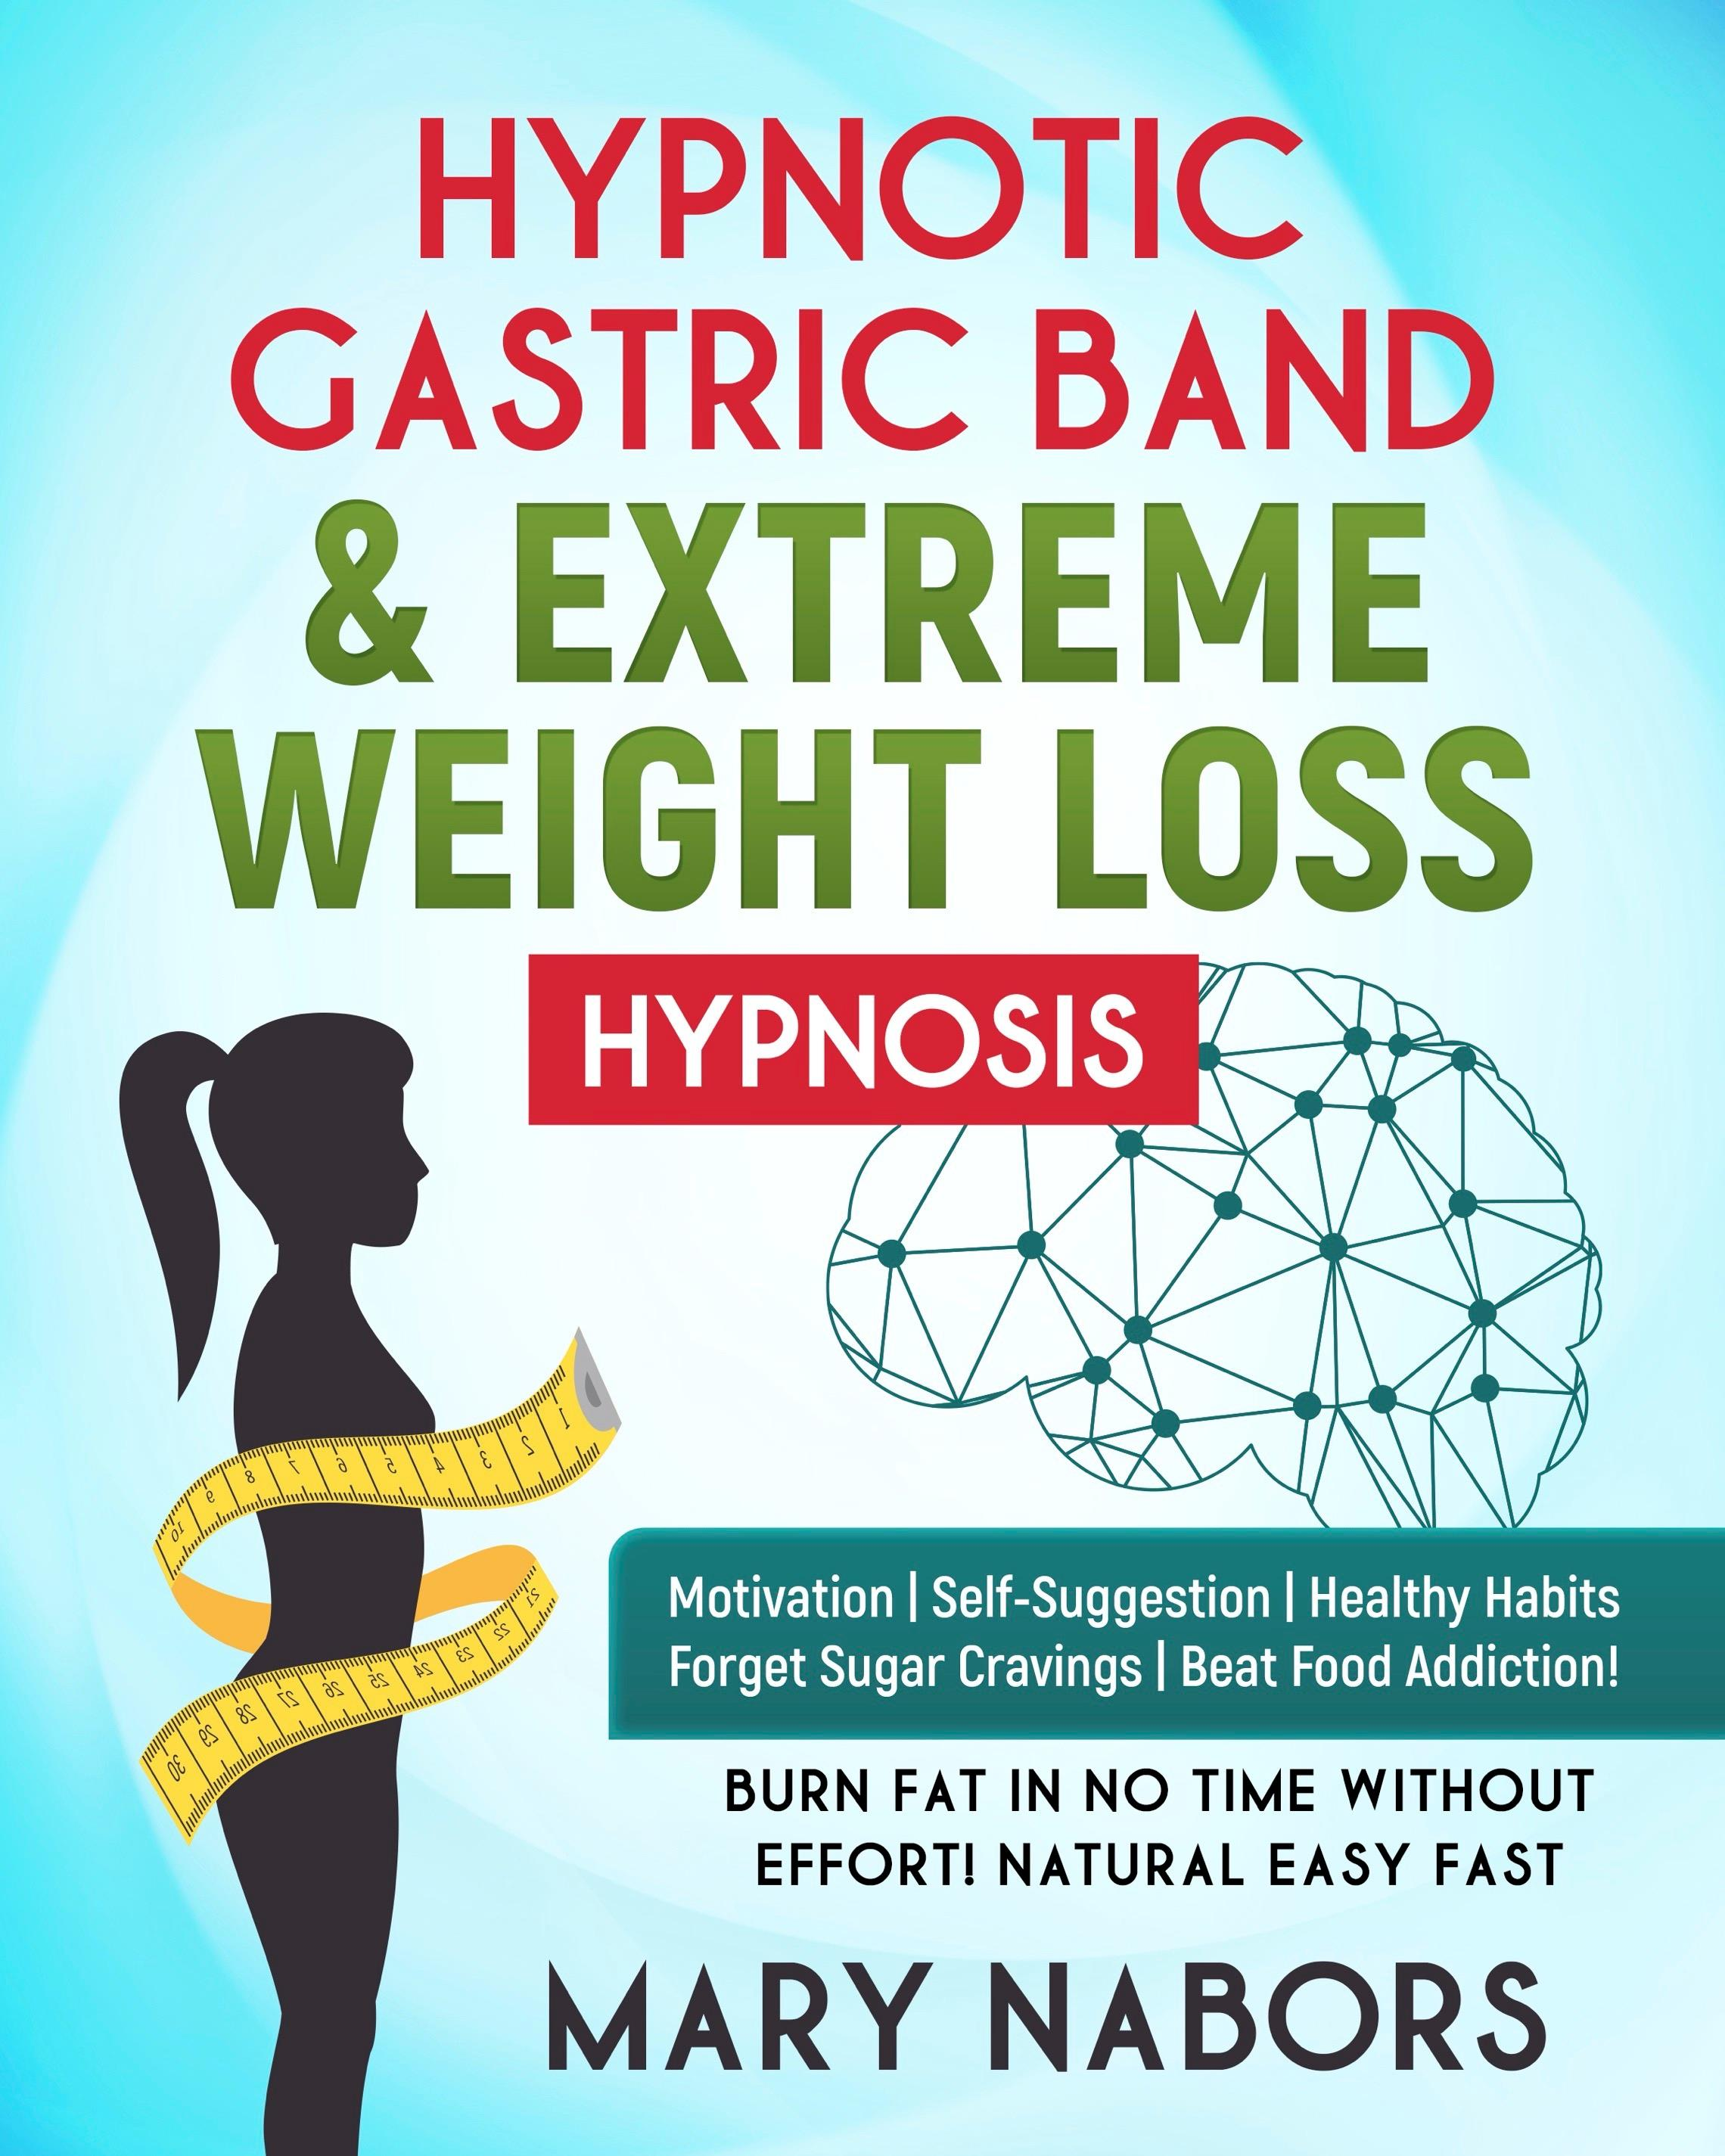 Hypnotic Gastric Band & Extreme Weight Loss Hypnosis